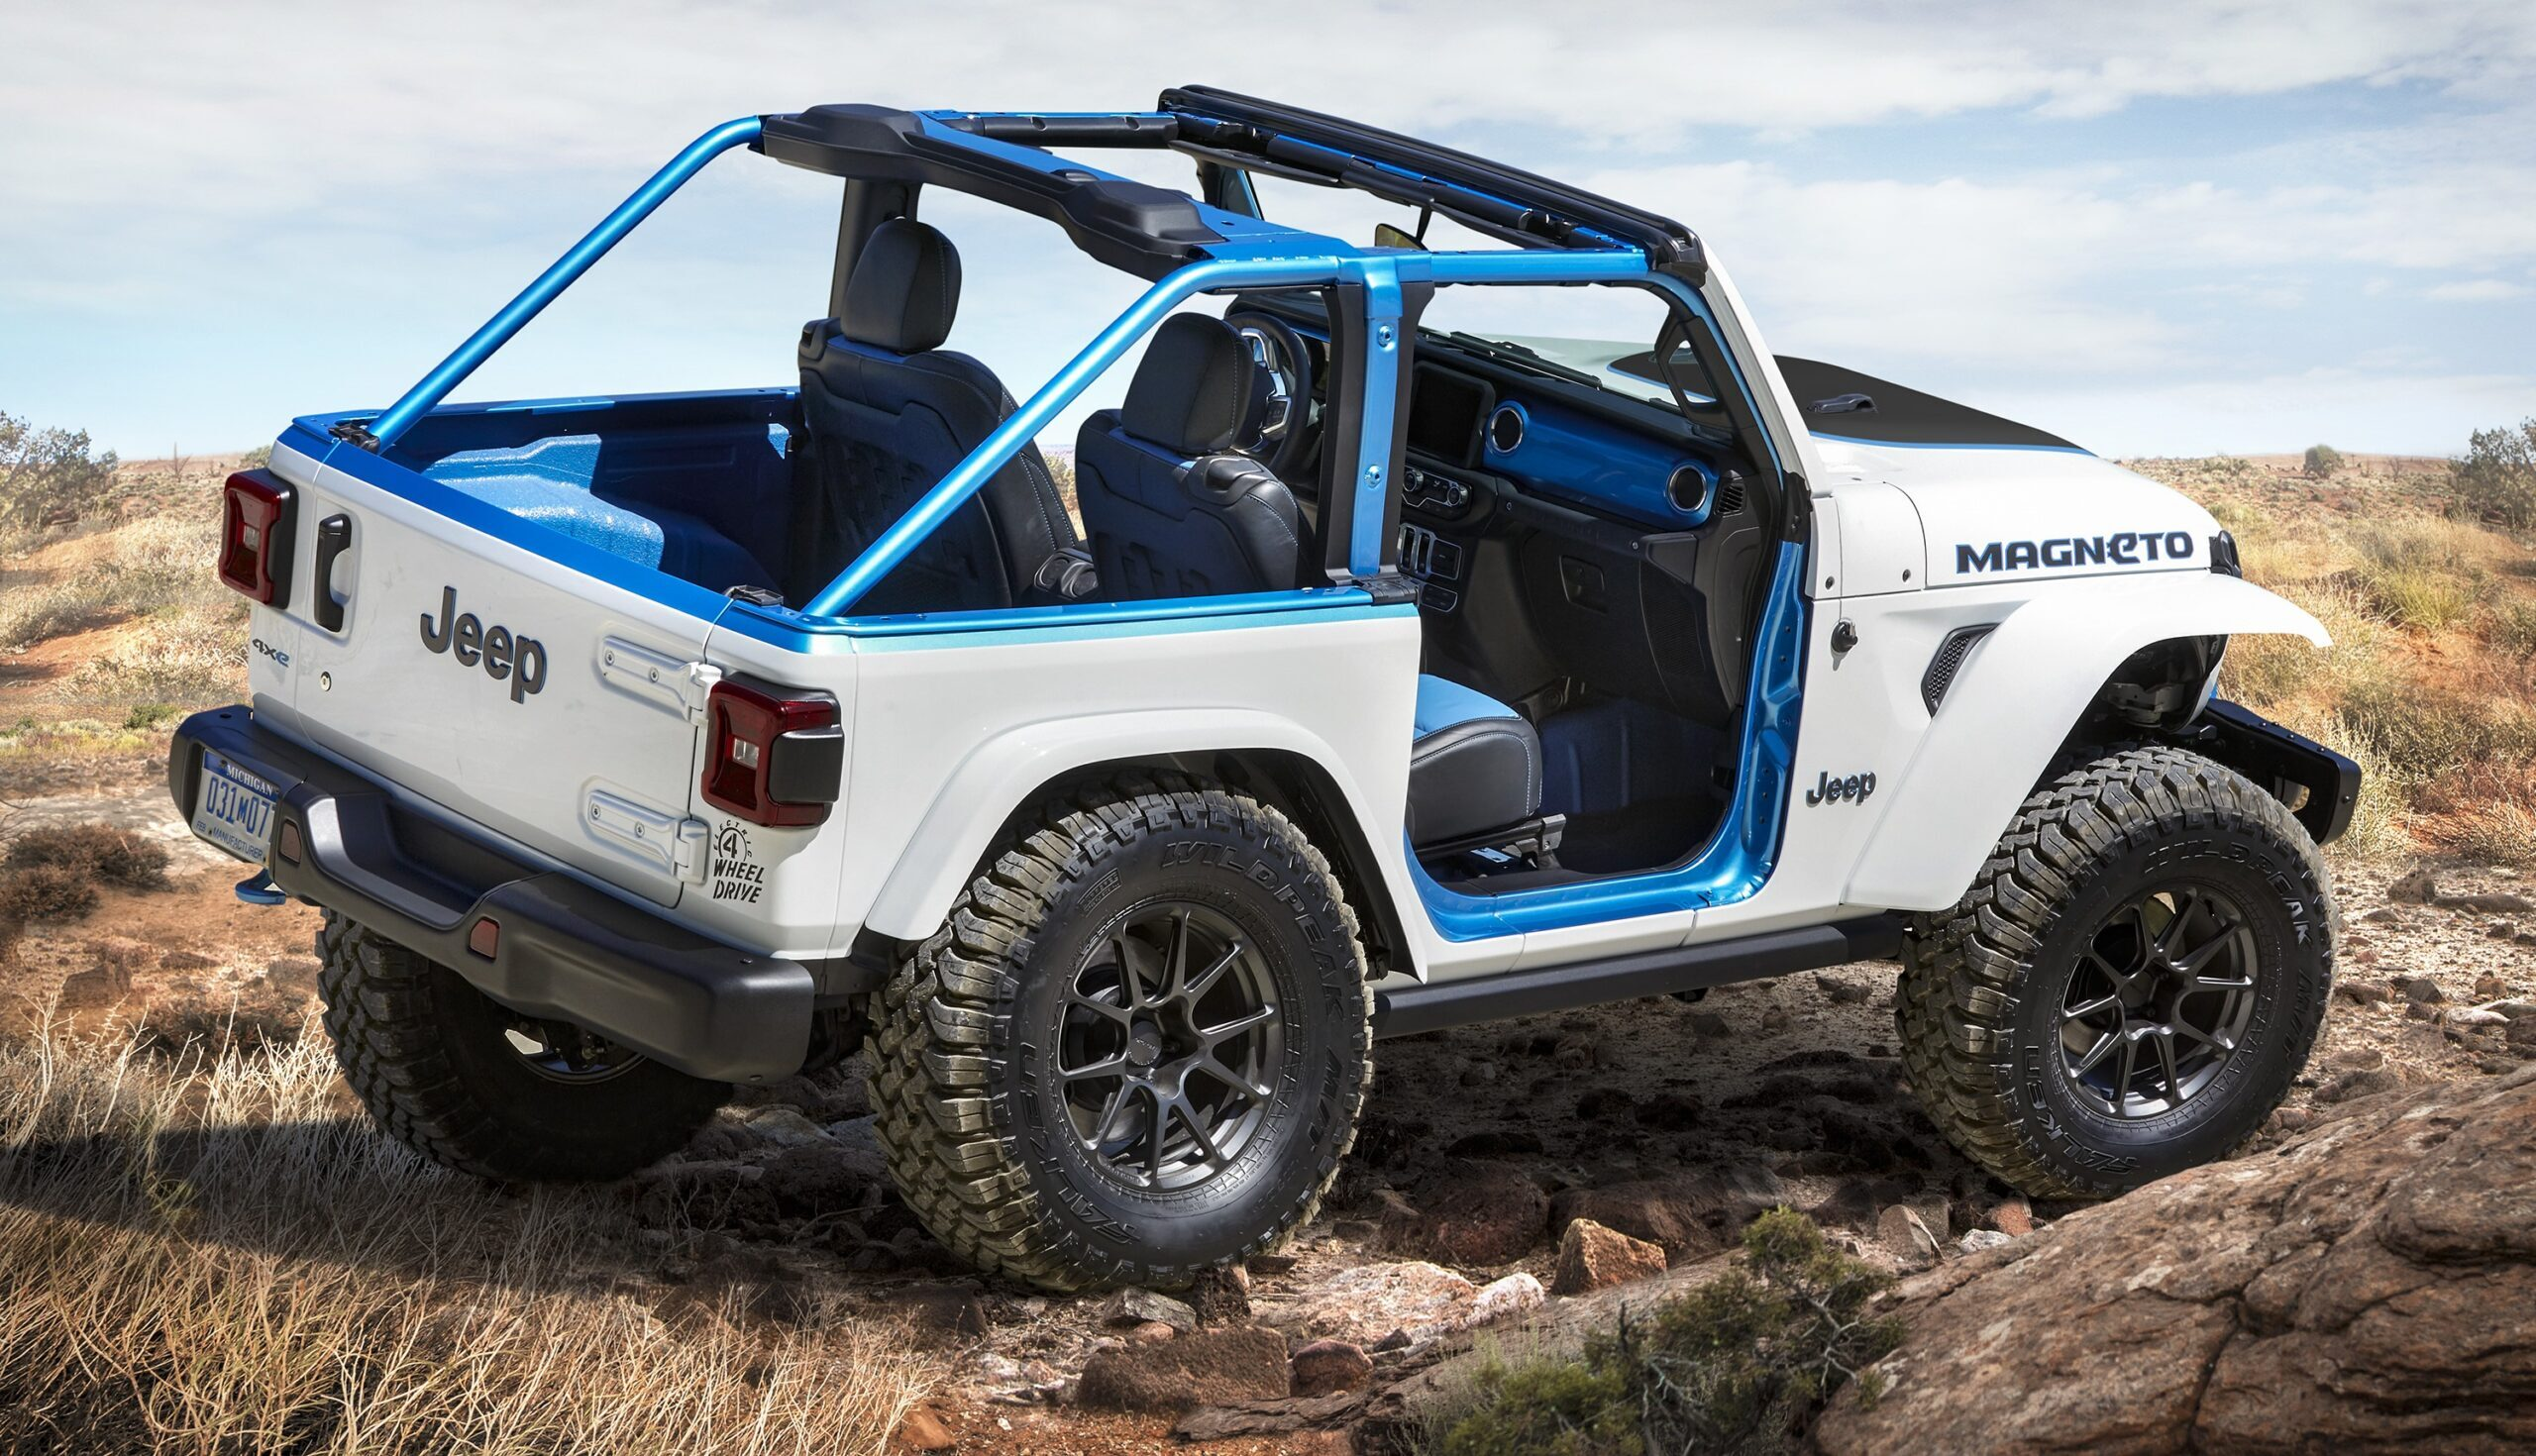 A rear view of the Jeep Magneto along a truck trail